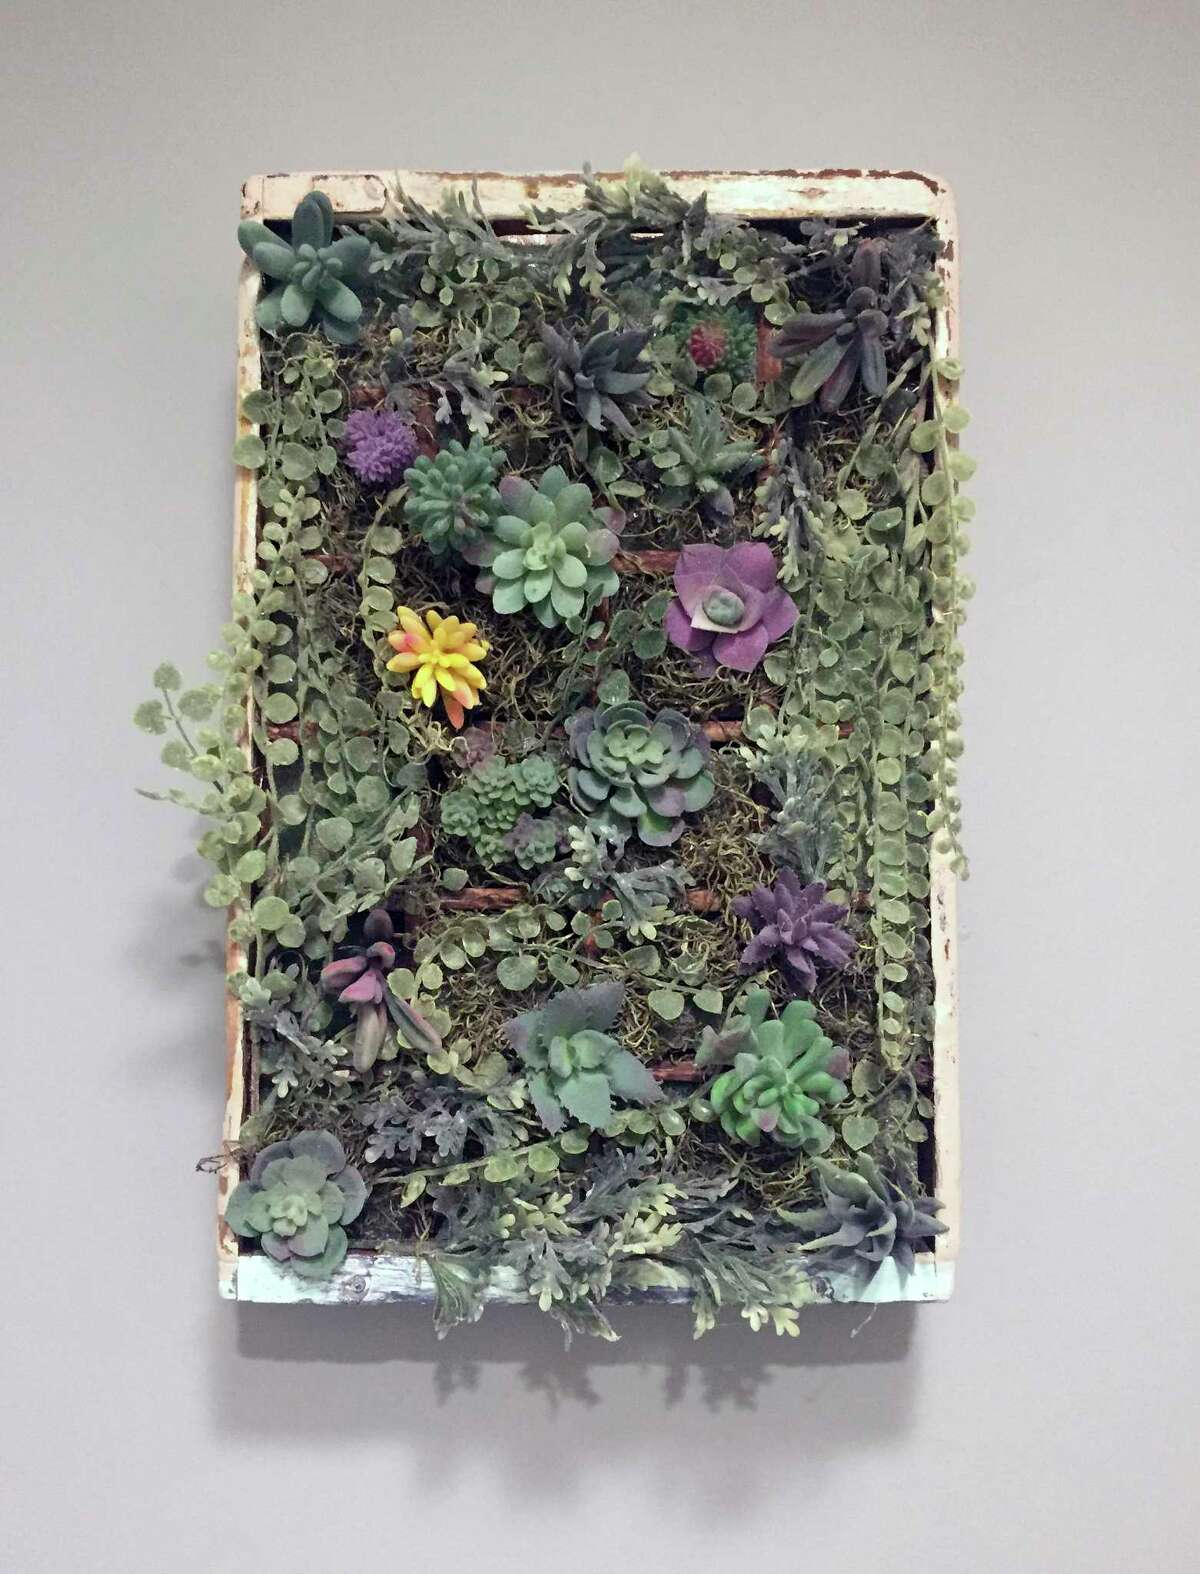 """Ashley Martin, a teacher and part time crafter in Green Township, N.J., created this display out of a scrounged wooden soda bottle crate and a collection of succulents. Martin says she's always loved doing arts and crafts projects, but she really became obsessed with cottagecore décor when she and her husband bought an 1850s farmhouse. Turning her ideas into custom art and signs became a side gig for her, and she's busy working on orders for the holidays now. I really enjoy working on something creative any time that I can. For me, it's an outlet."""" (Ashely Martin via AP)"""